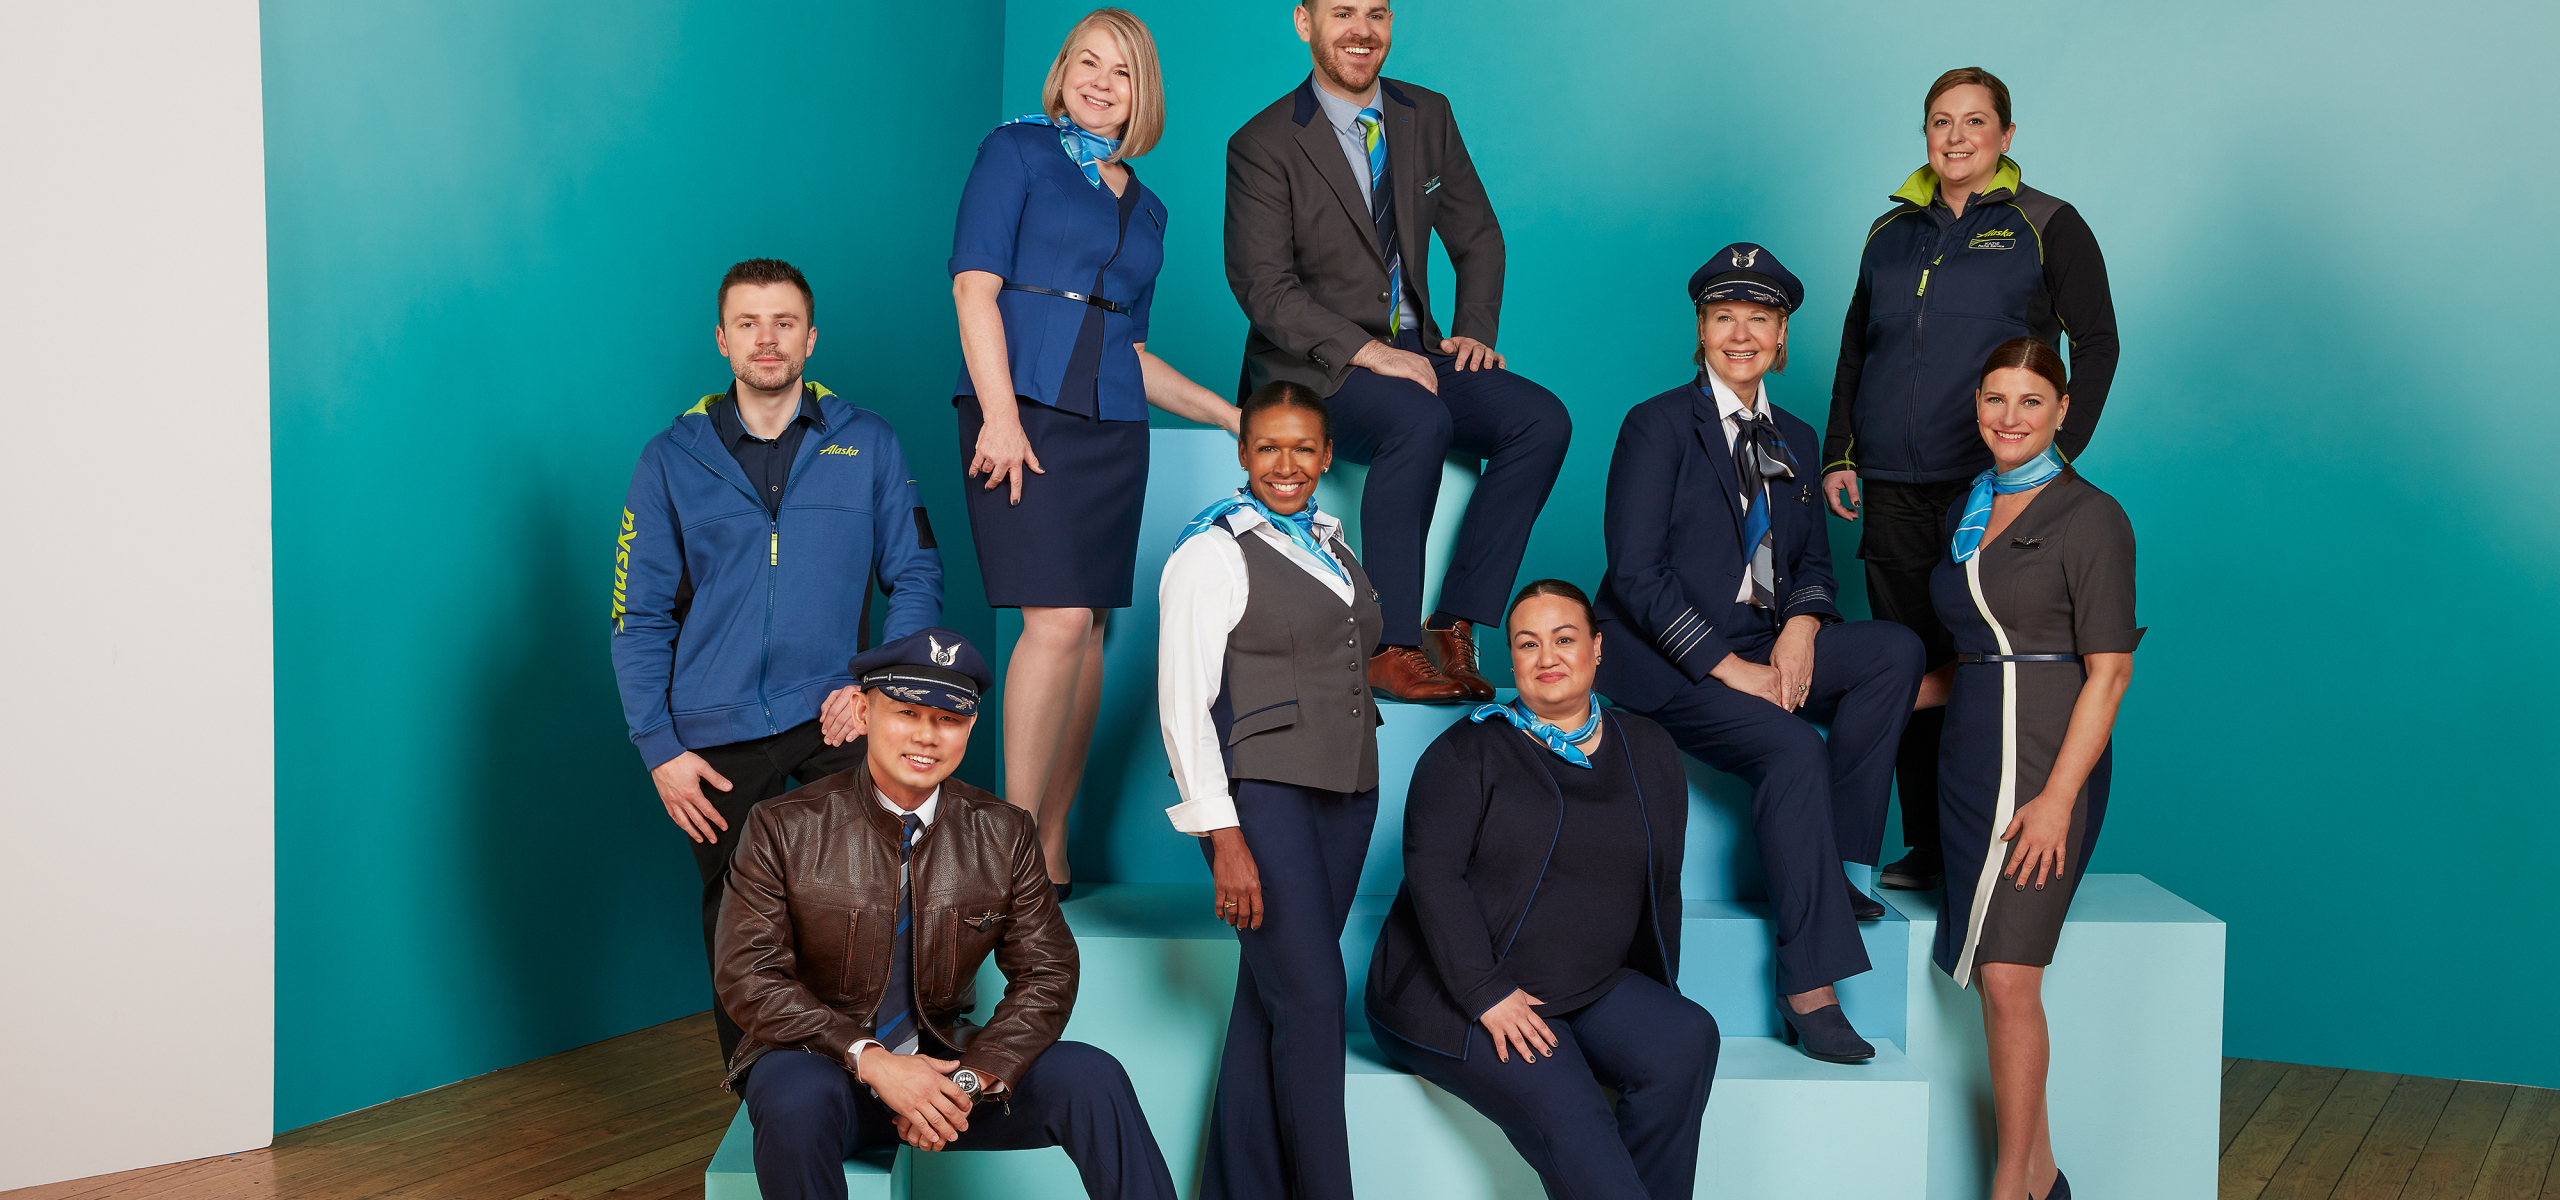 Alaska Airlines has unveiled it's new West-Coast inspired line of uniforms, custom-designed by Seattle fashion designer Luly Yang. (Photo: Alaska Airlines)<p></p>